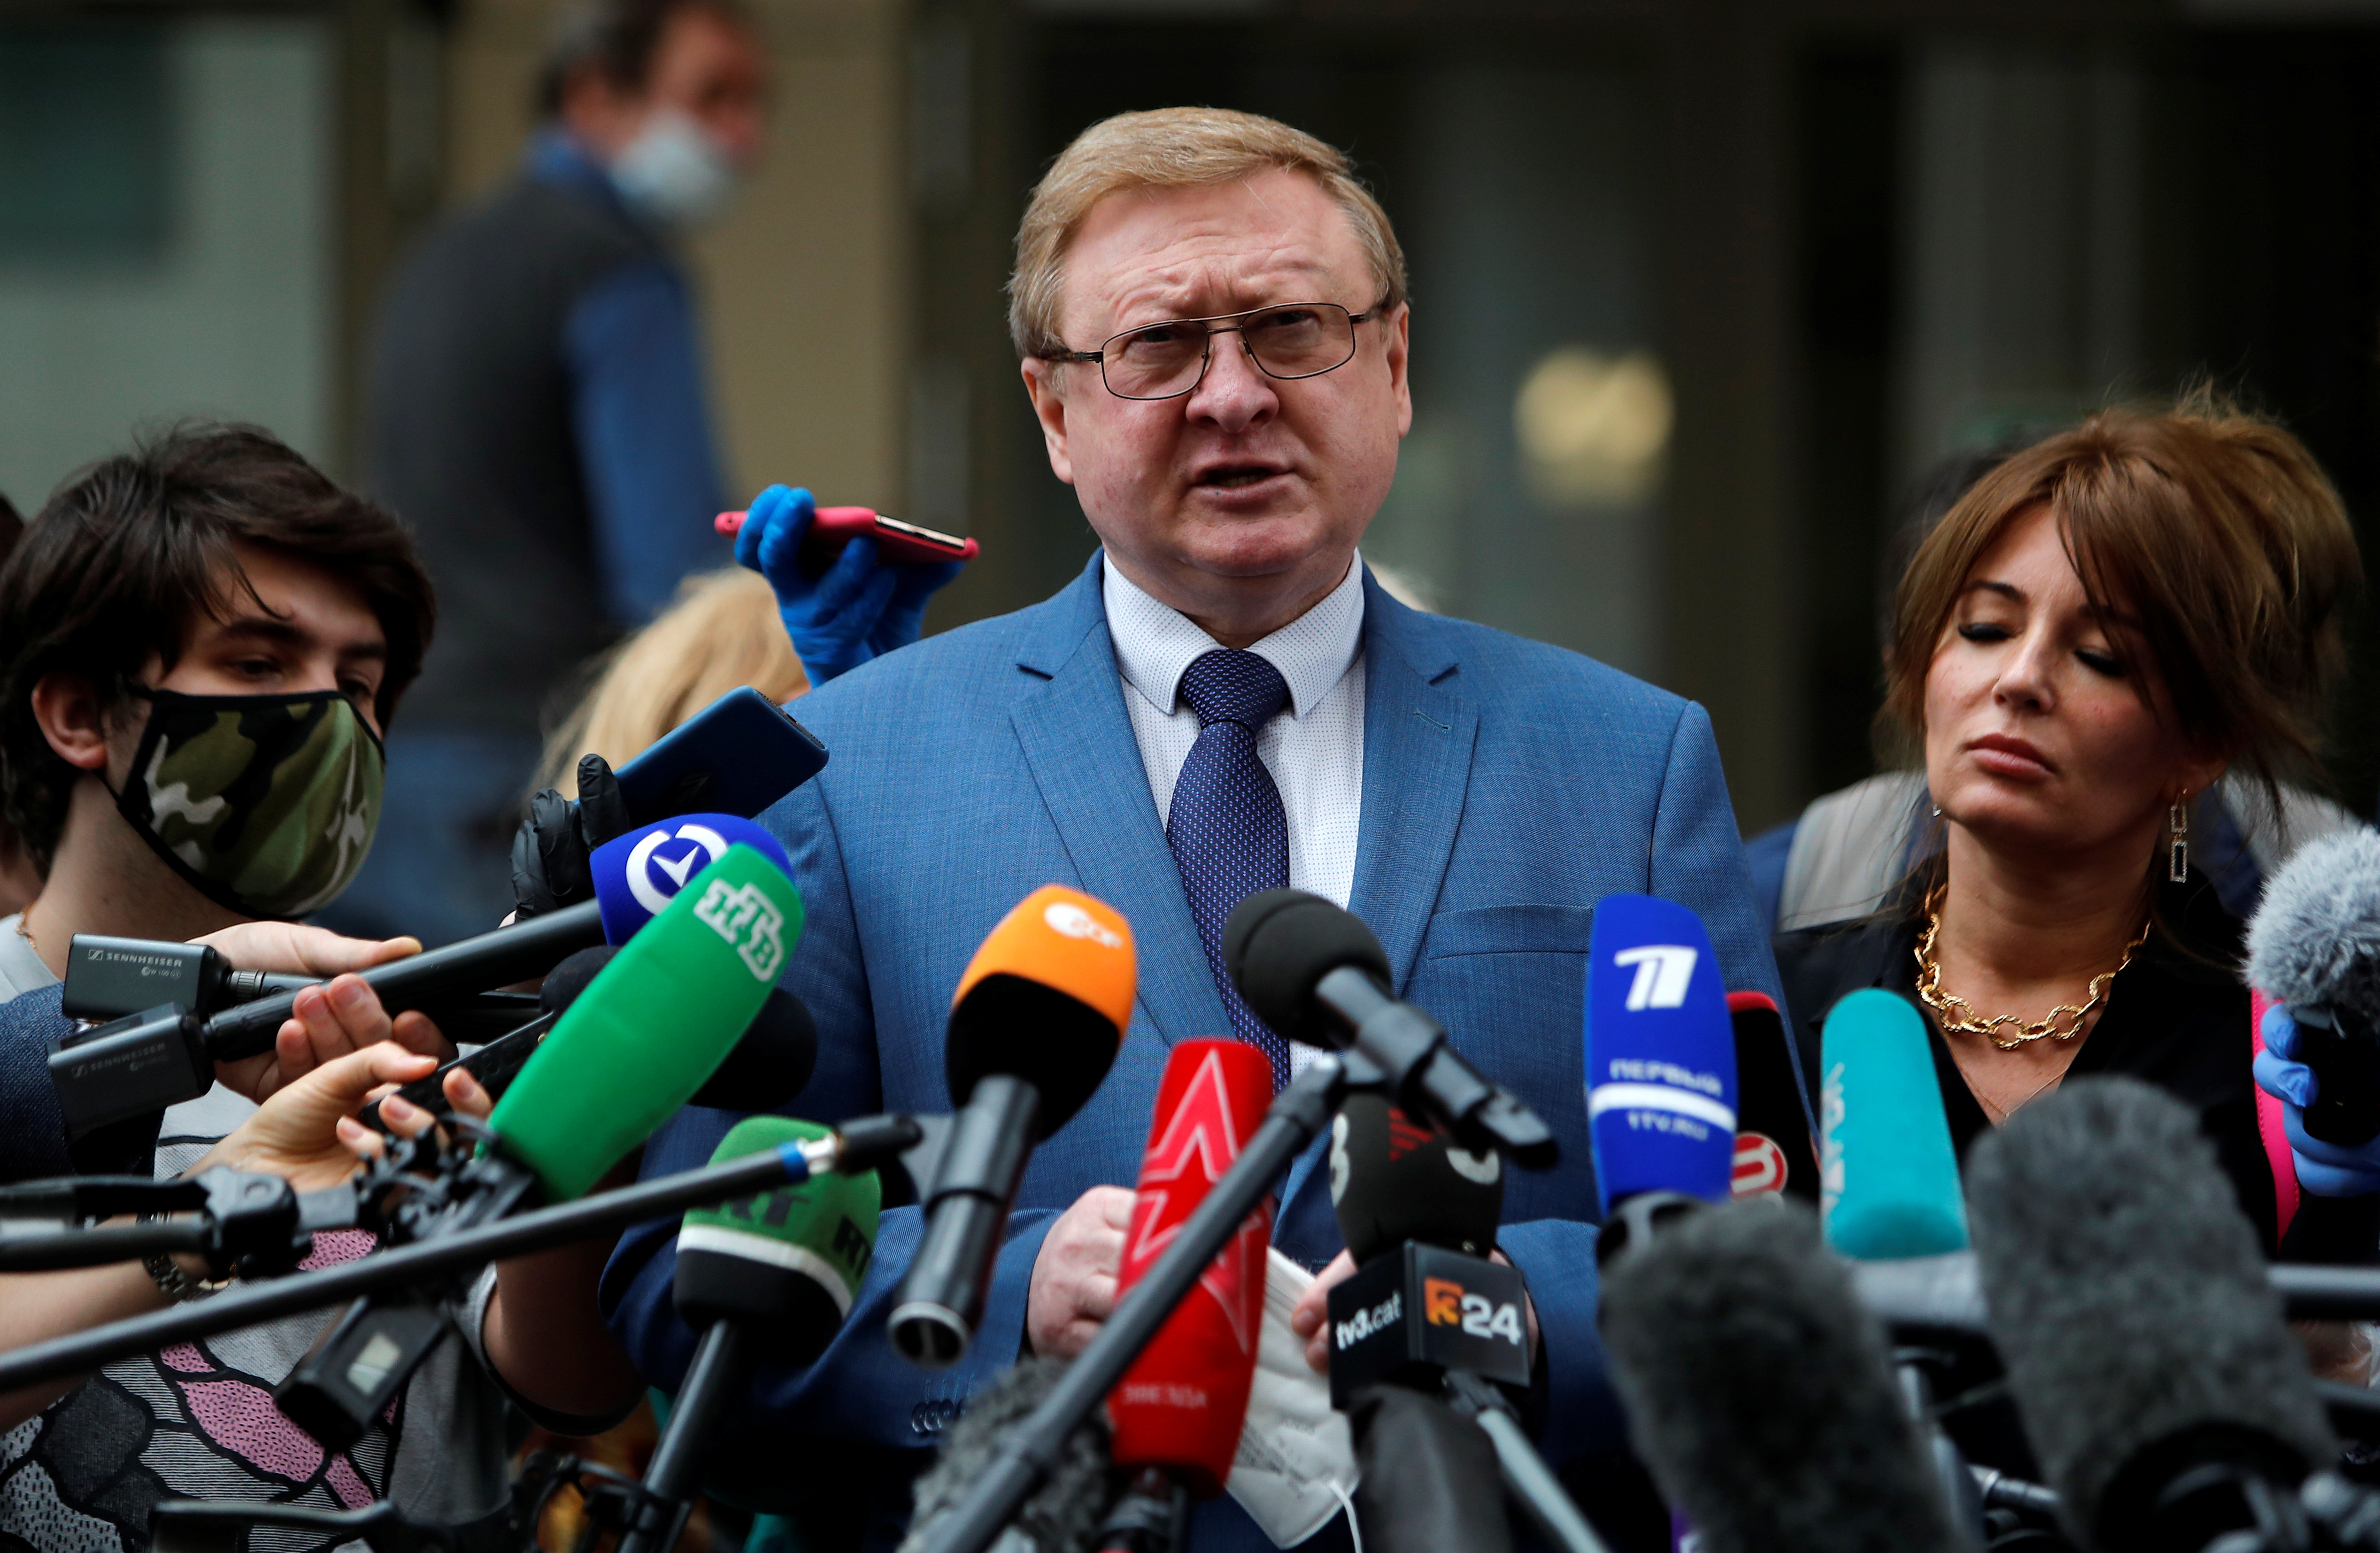 Vladimir Zherebenkov, lawyer of former U.S. Marine Paul Whelan, who was detained and accused of espionage, addresses the media in Moscow, Russia June 15, 2020. REUTERS/Maxim Shemetov/File Photo